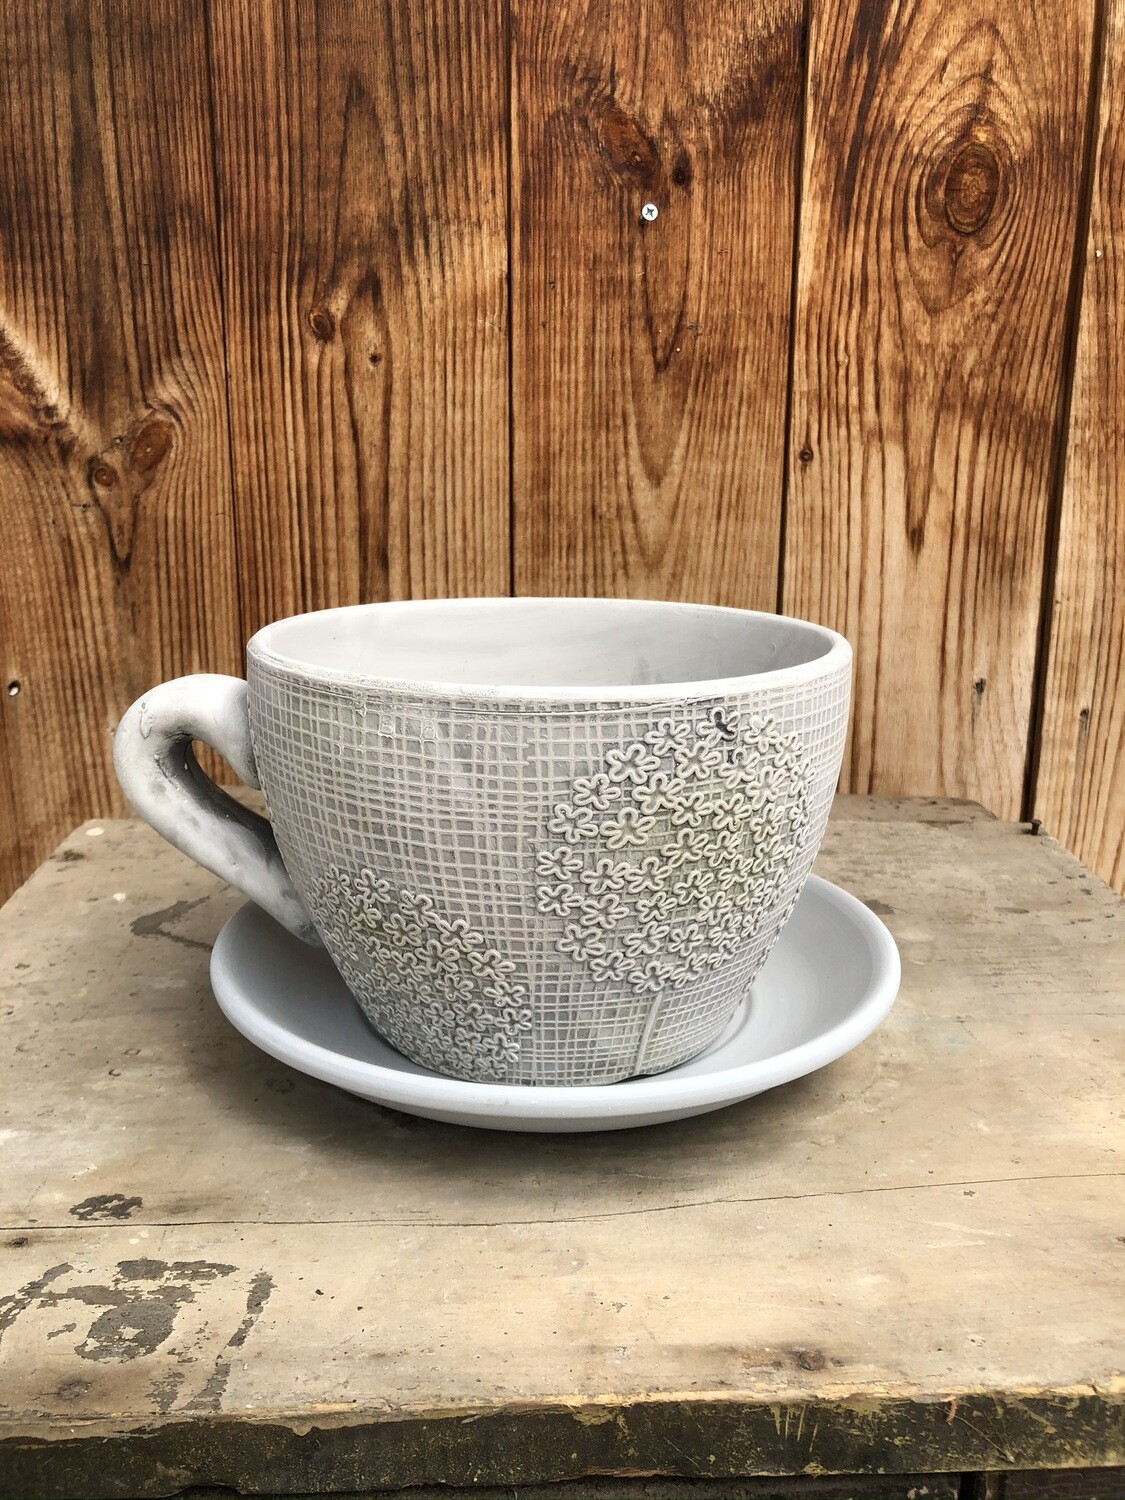 Garden Decor | Grey Teacup & Saucer Planter